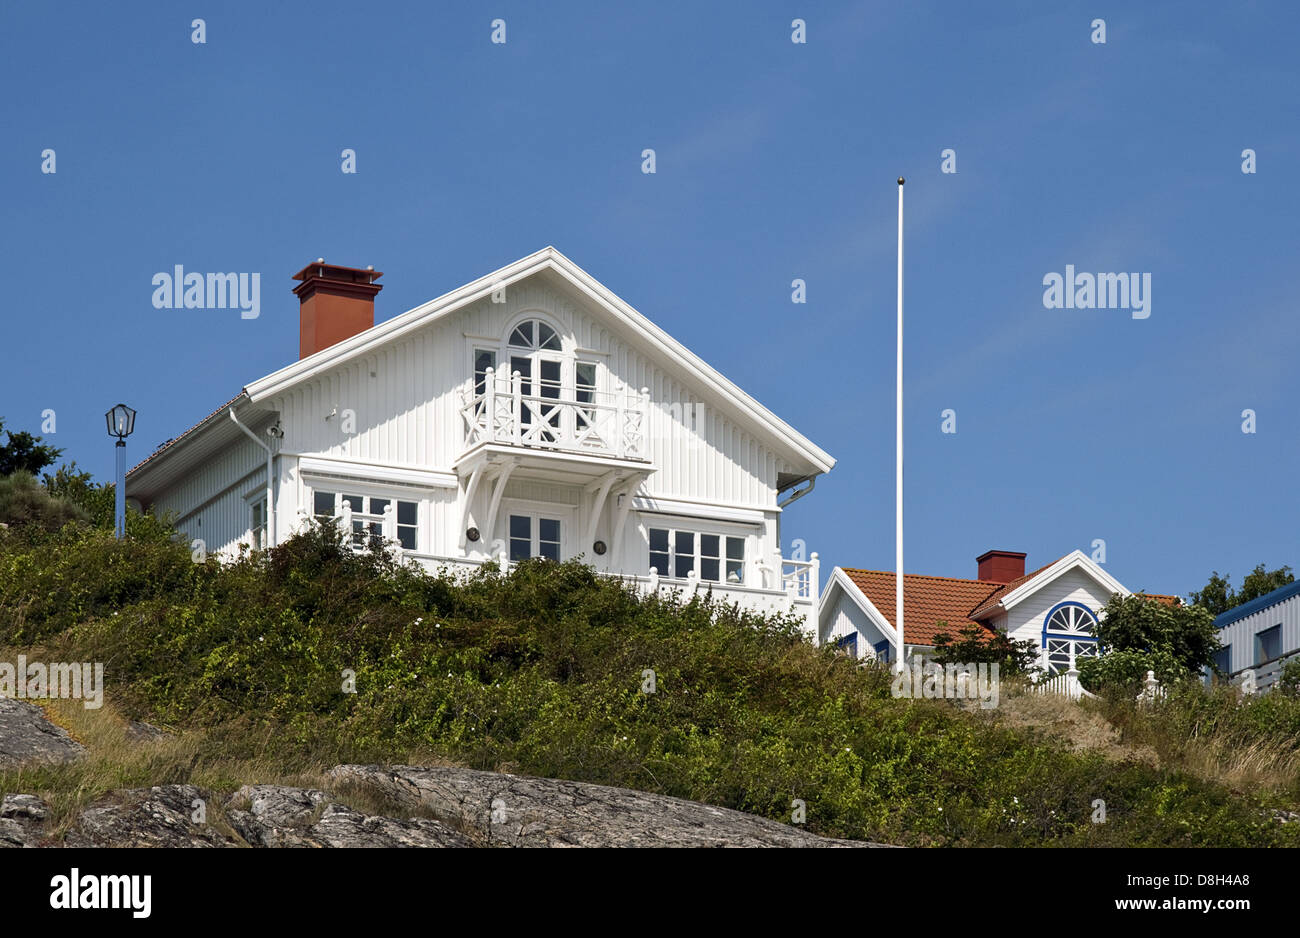 Holiday Home, Sweden - Stock Image